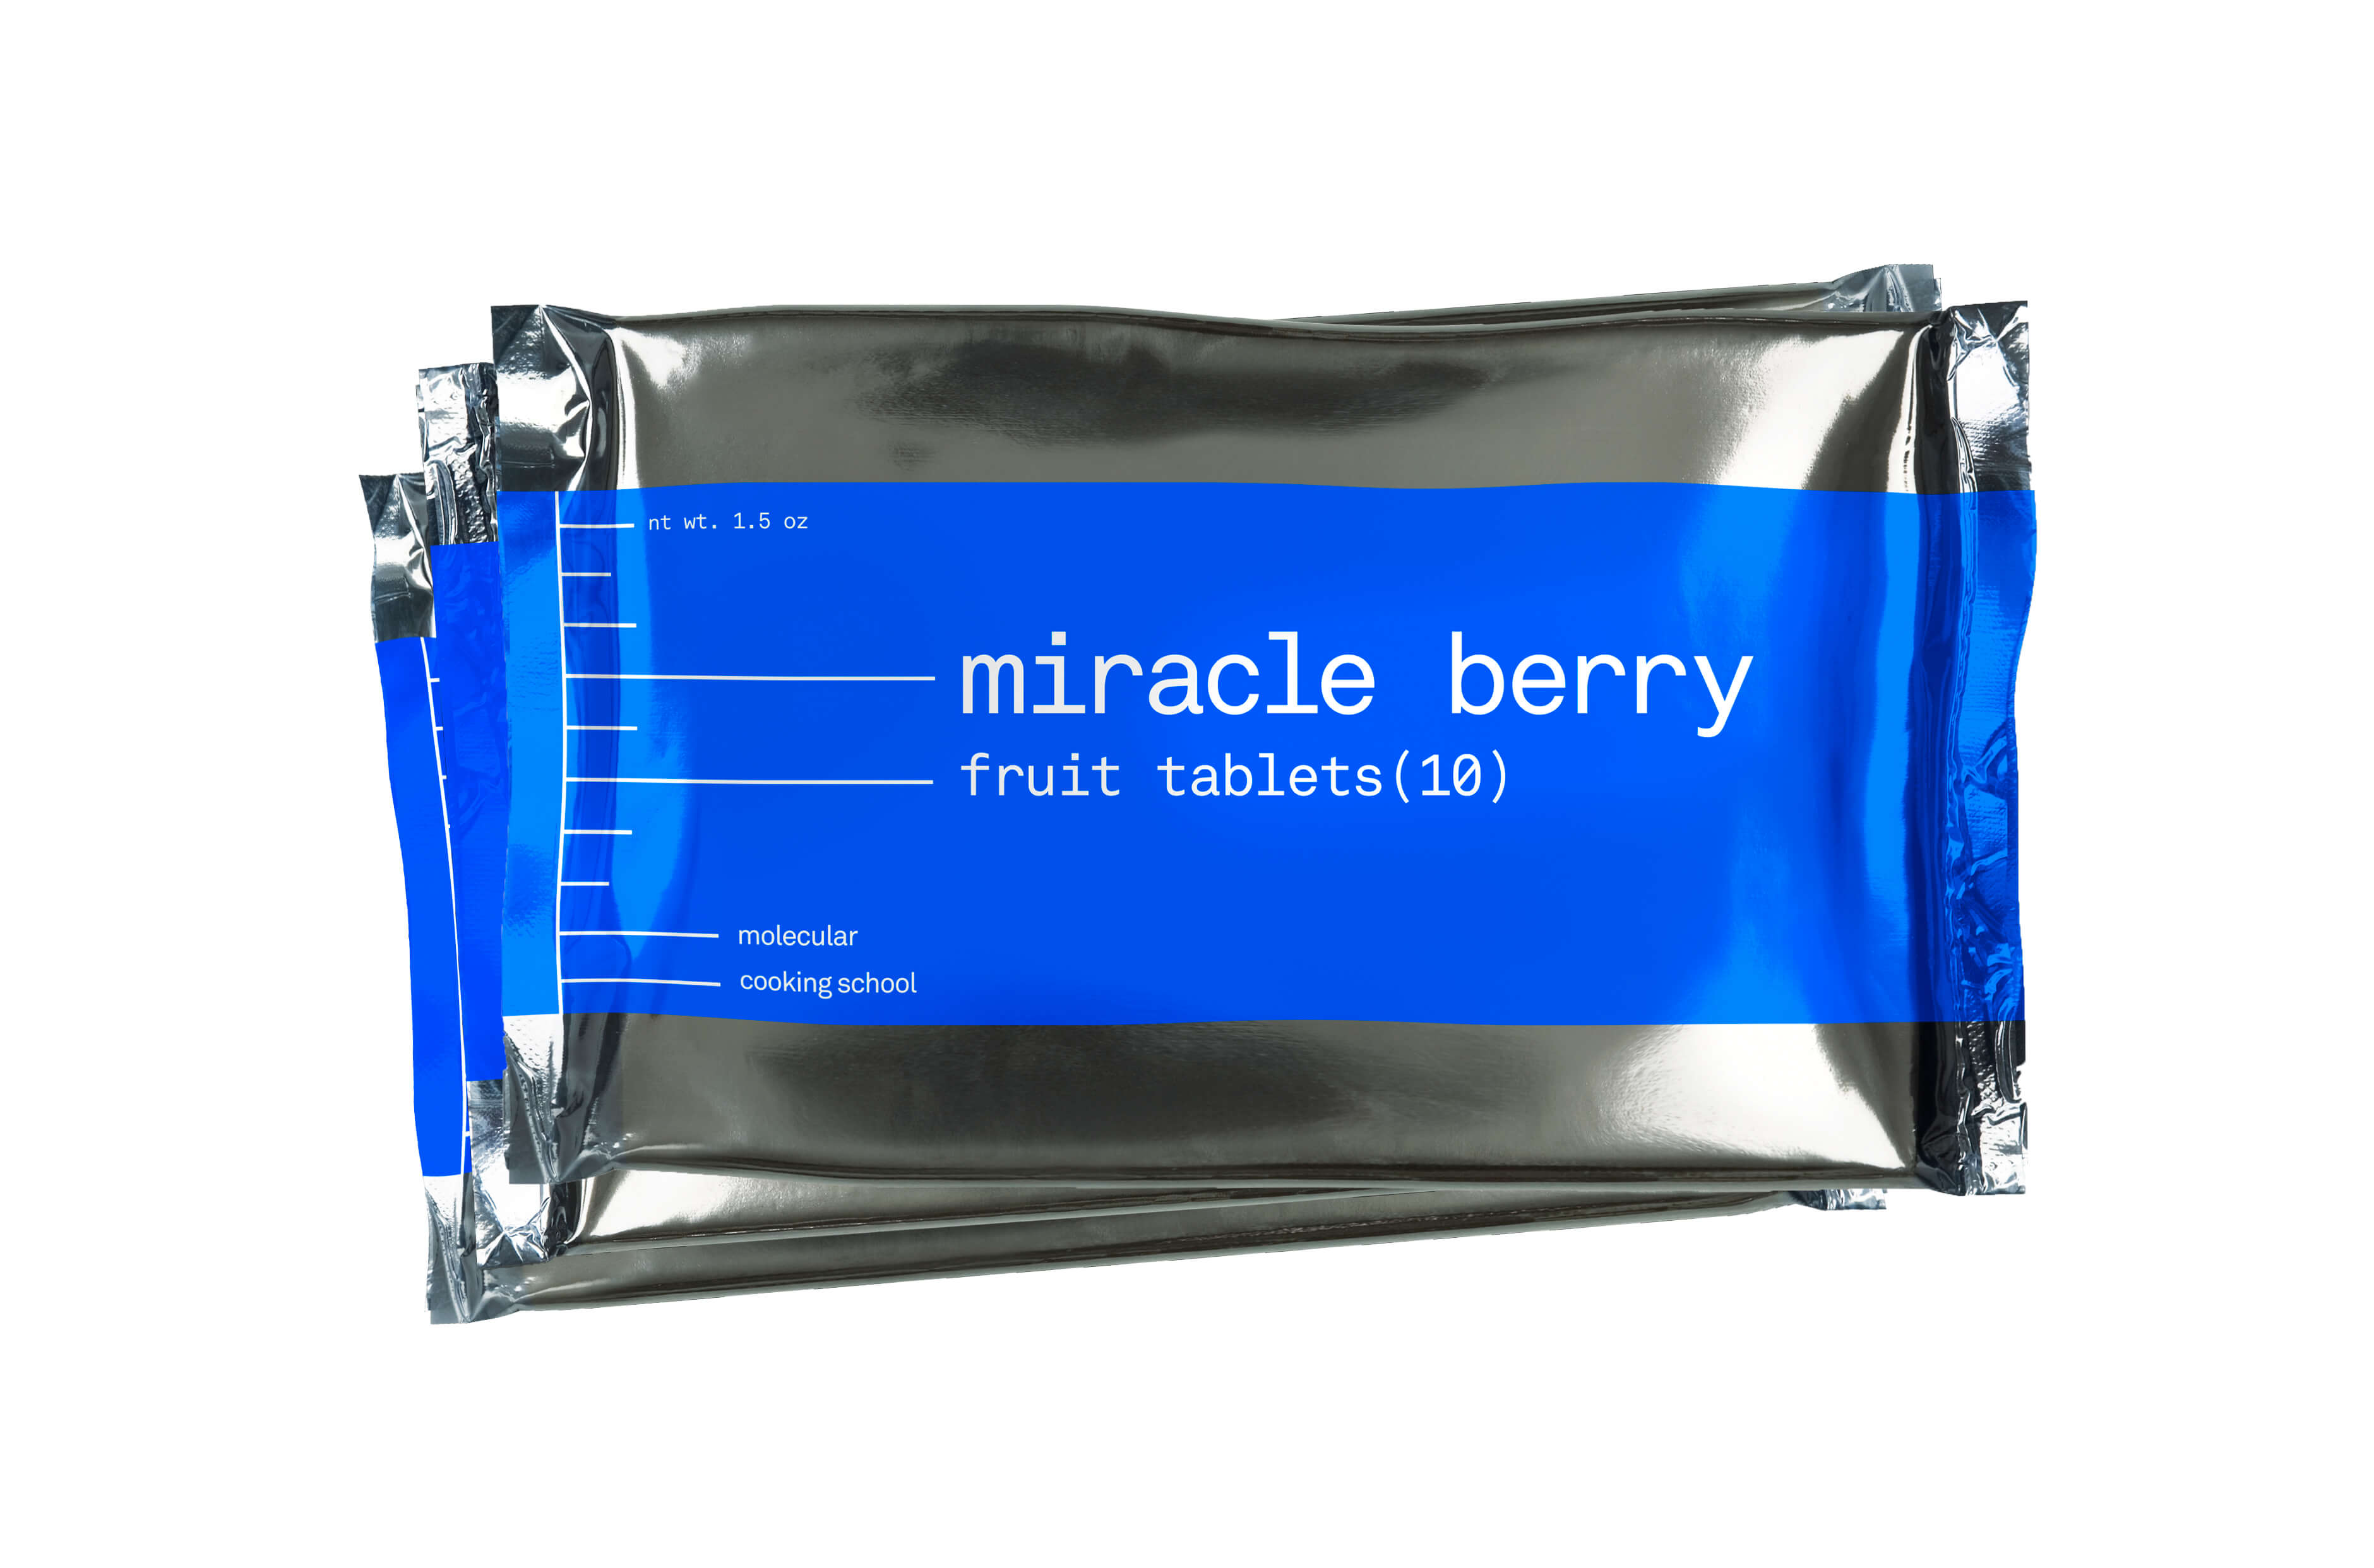 MiracleBerry